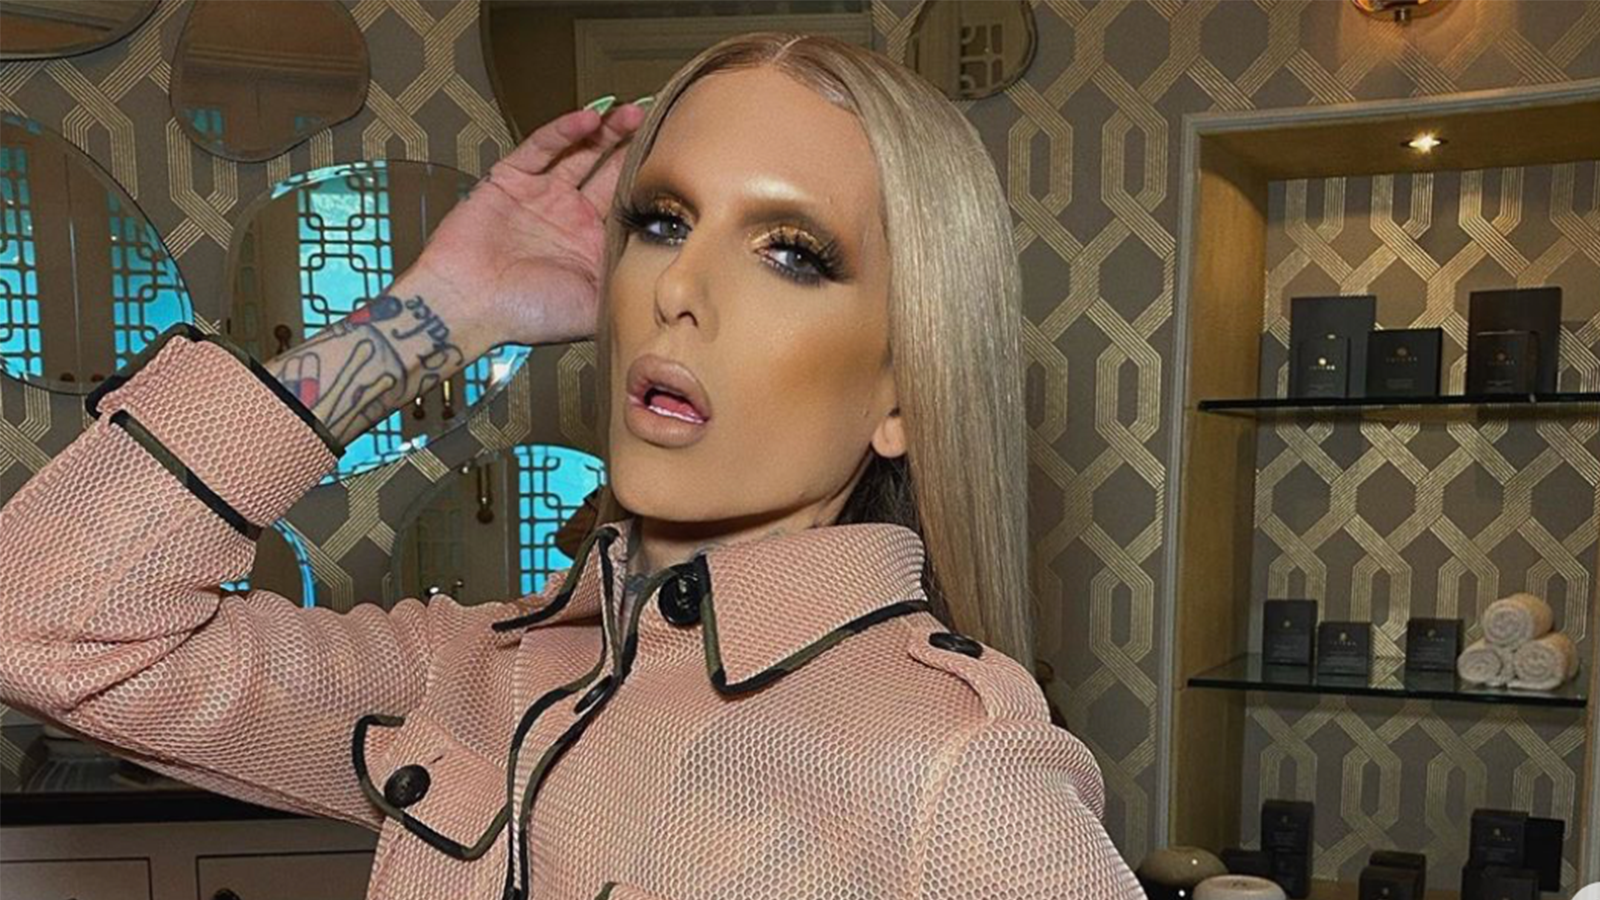 Jeffree Star poses on Instagram